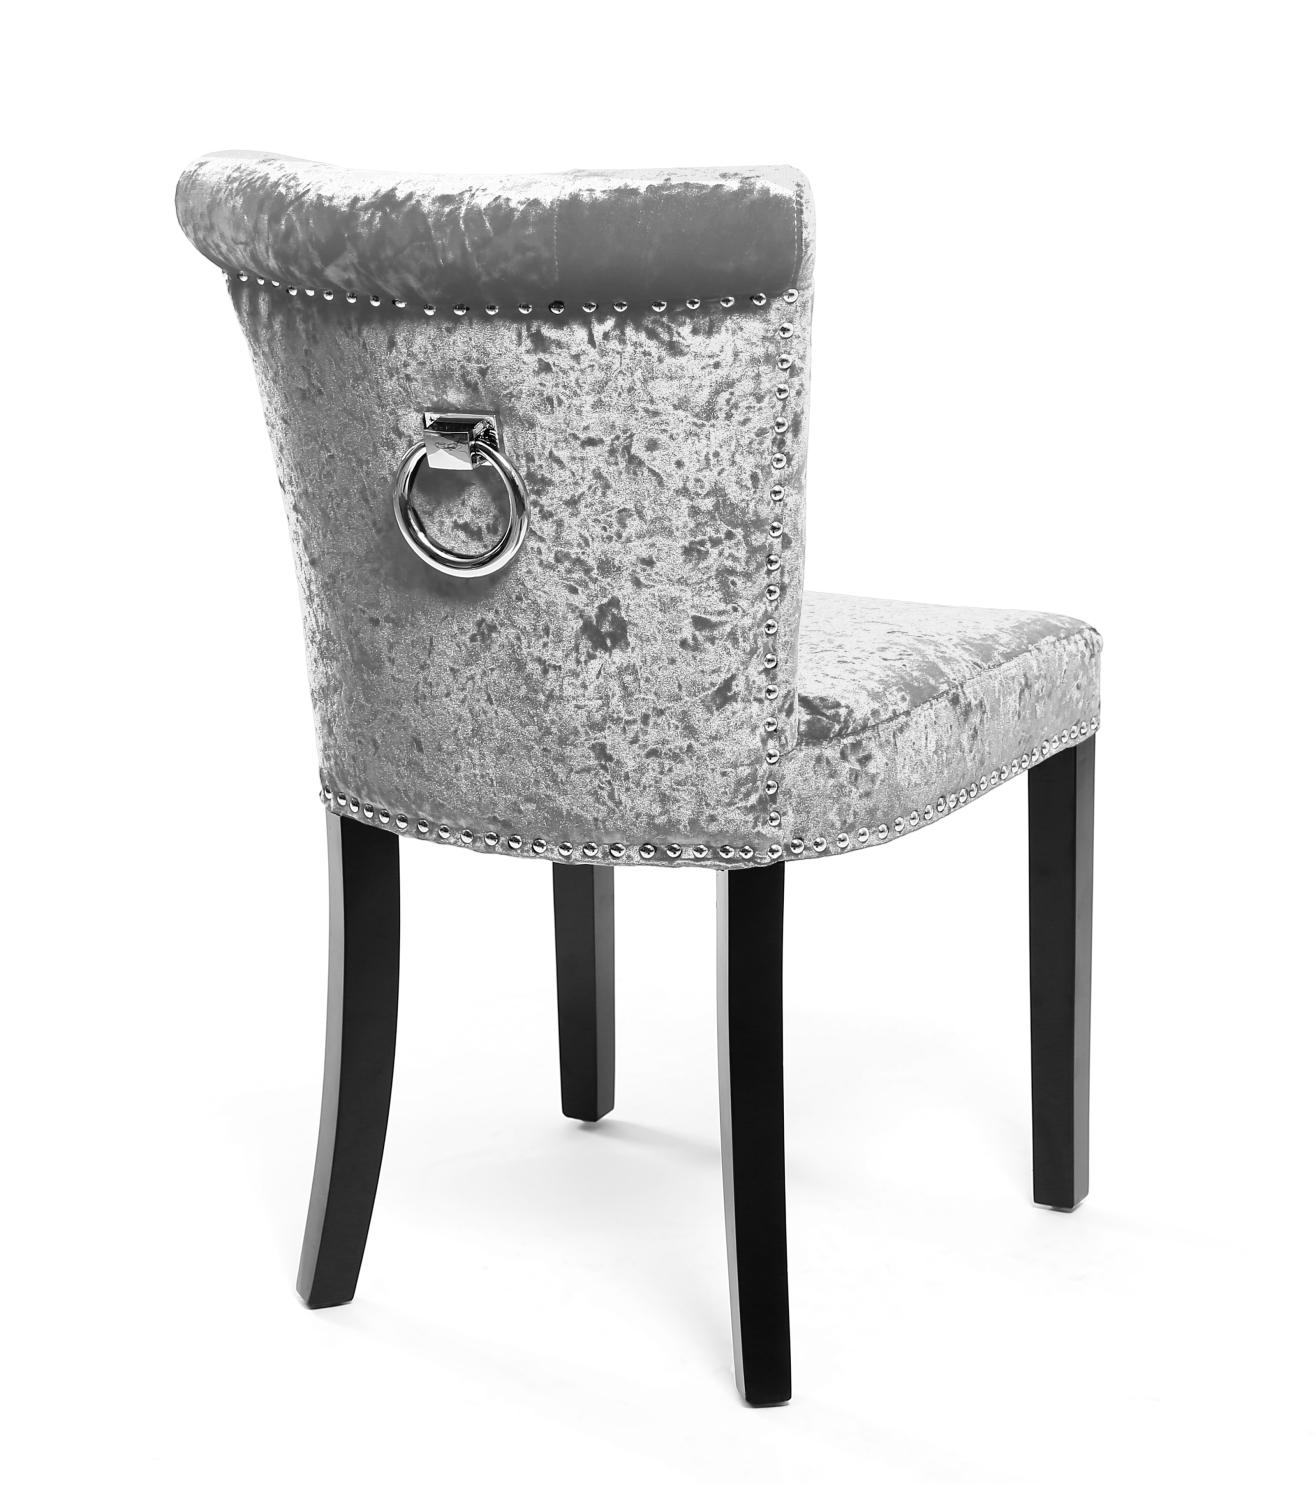 Dining Chairs With Handles On Back Regal Glam Crushed Velvet Silver Upholstered Dining Or